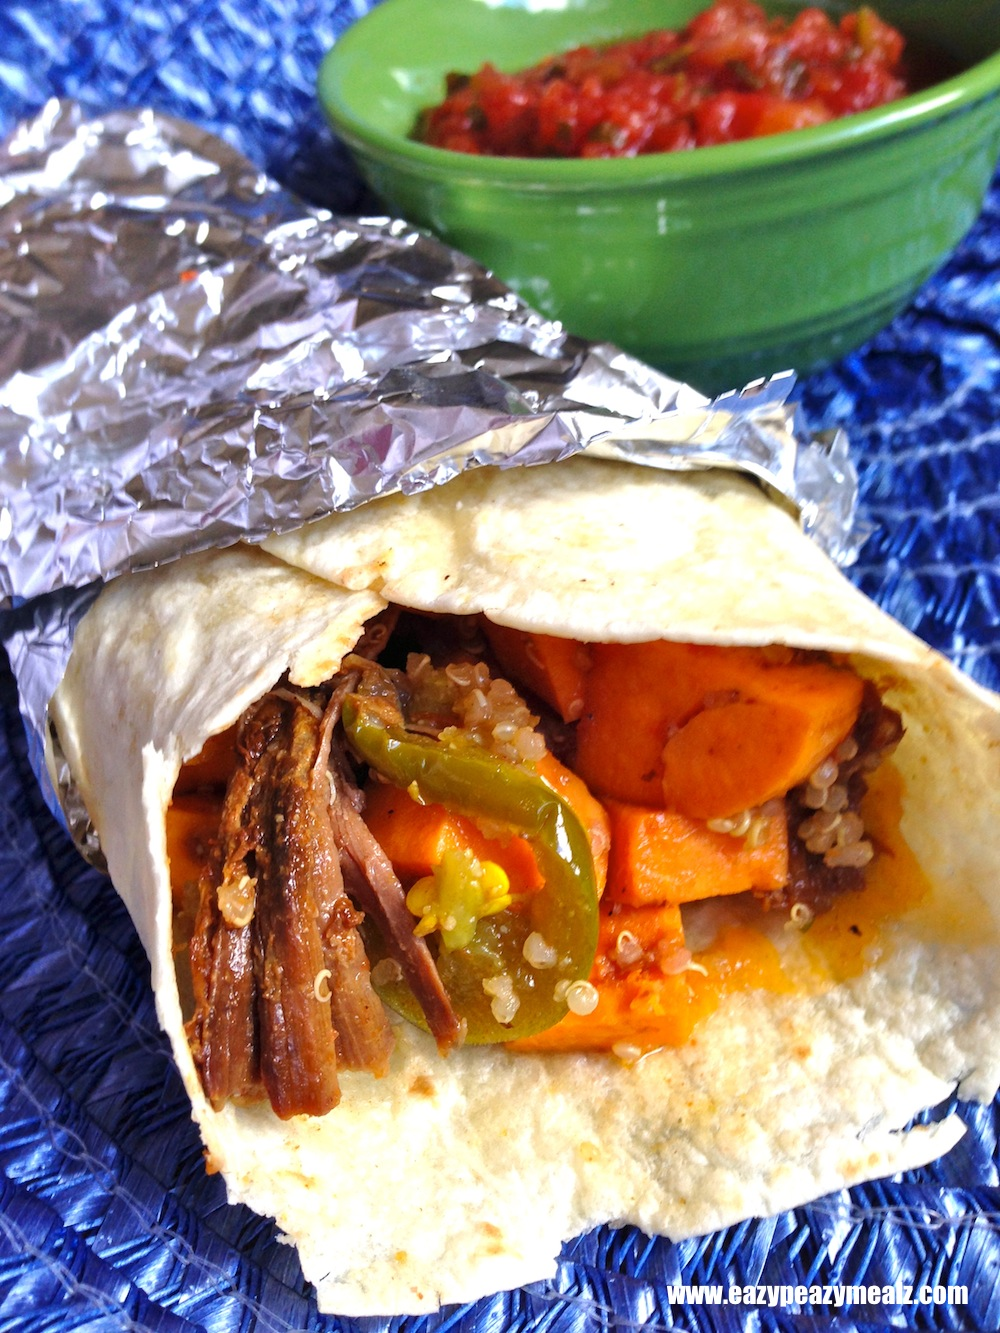 BBQ Pork, sweet potato, quinoa burrito